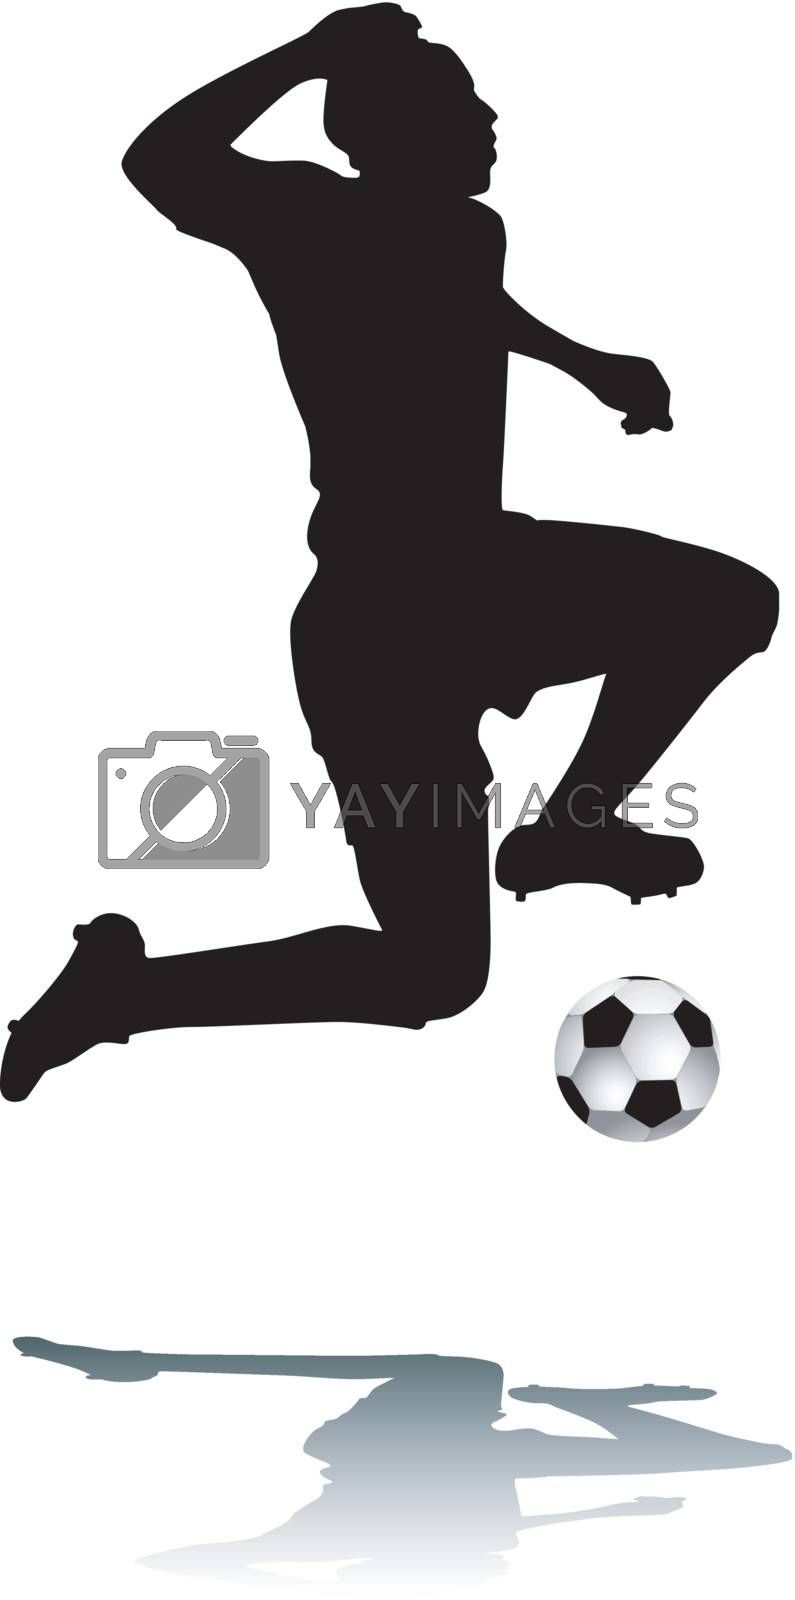 Royalty free image of Silhouette footballer by sattva